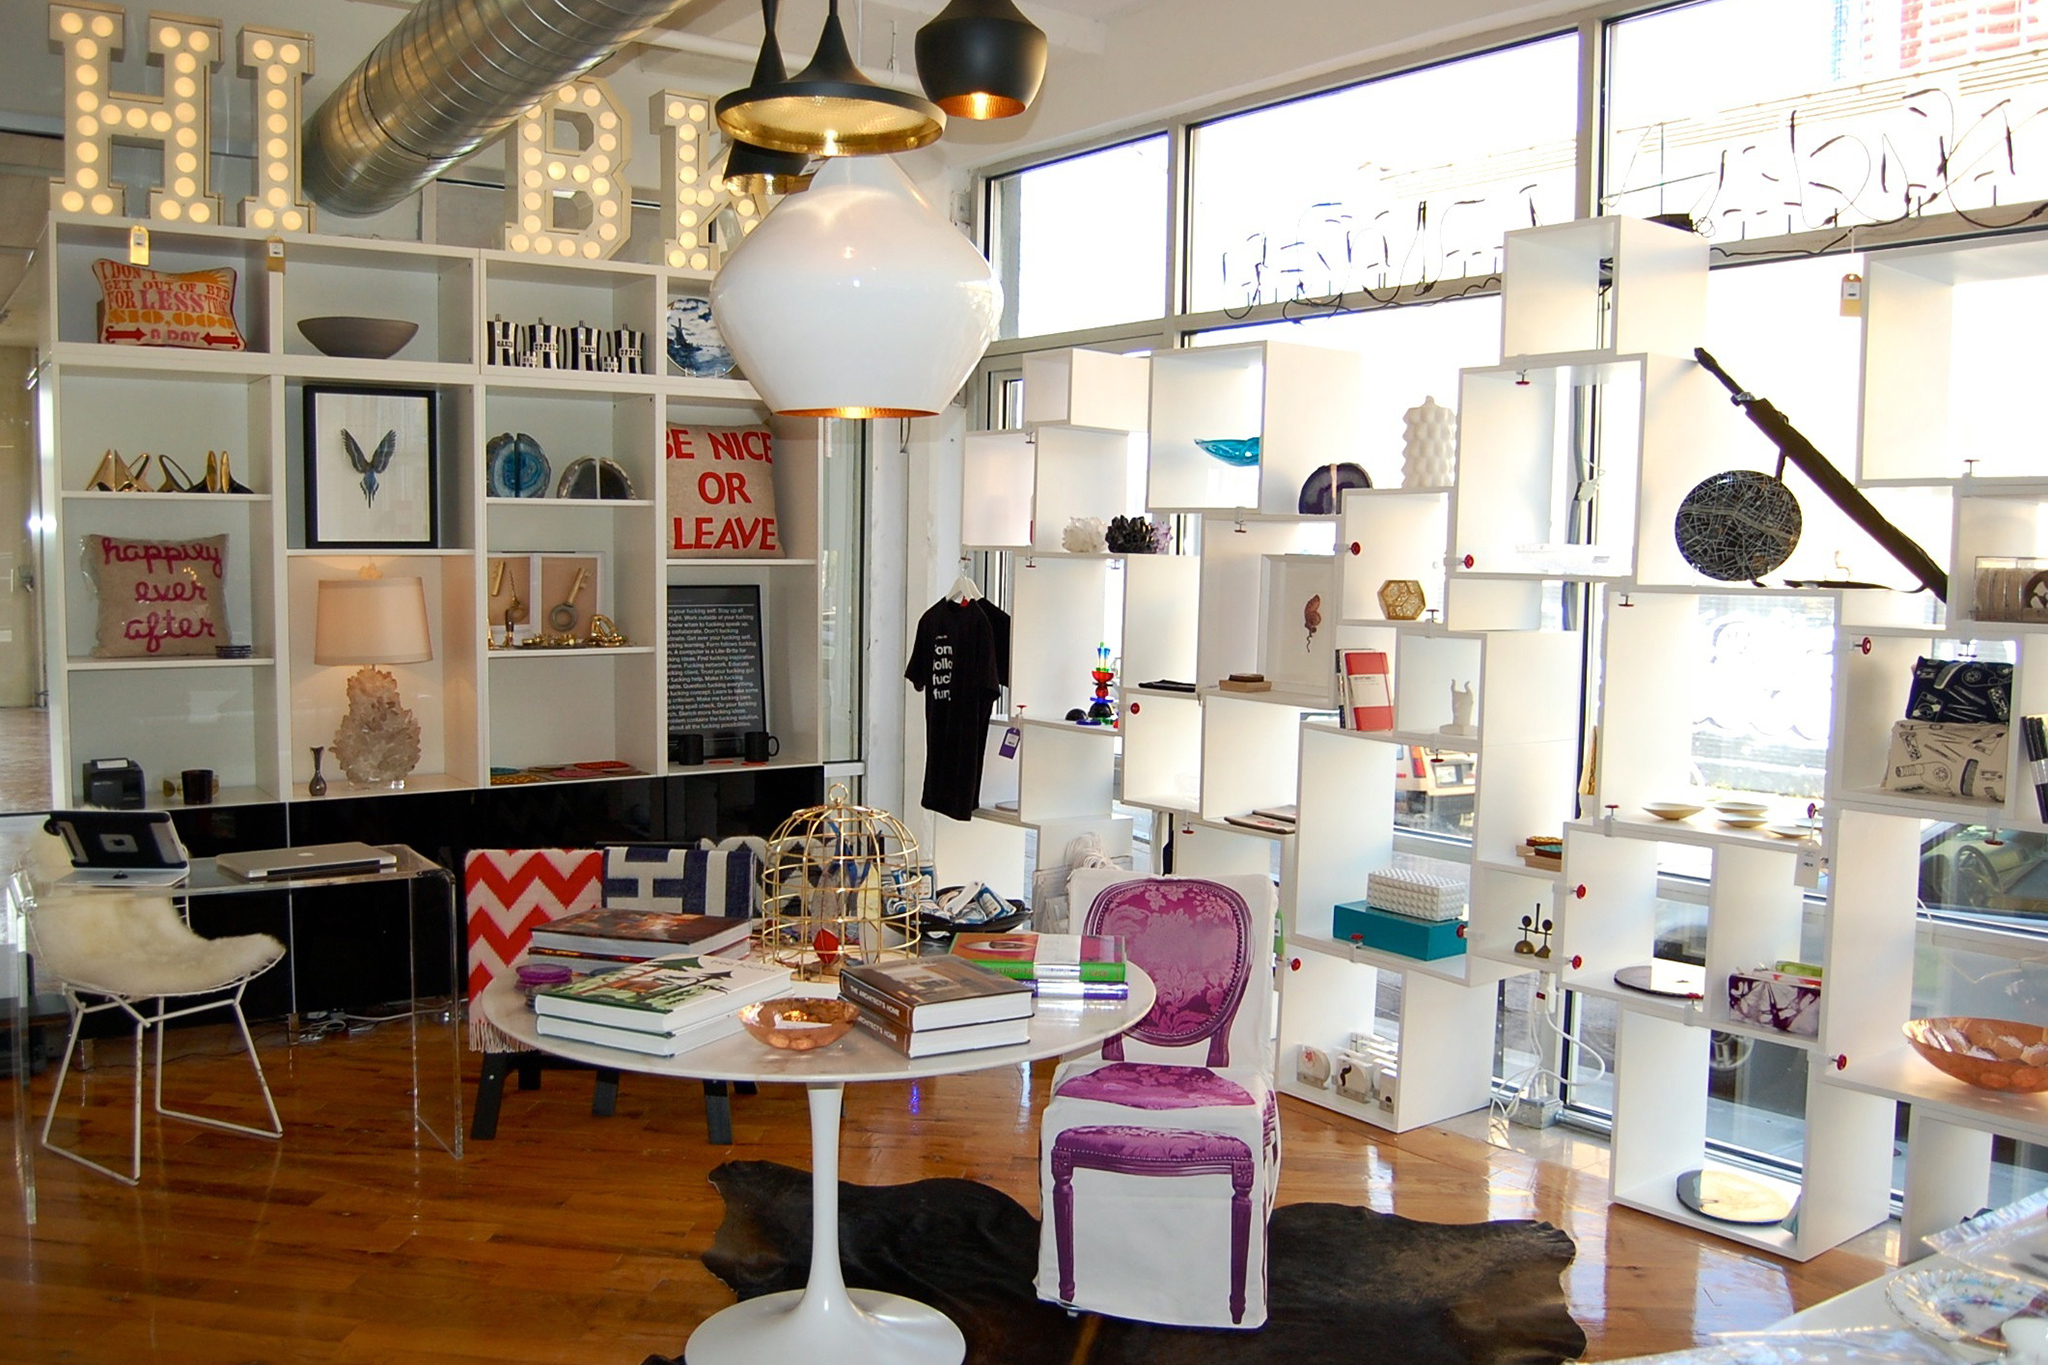 Home decor stores in nyc for decorating ideas and home furnishings - Home furnishing stores ...